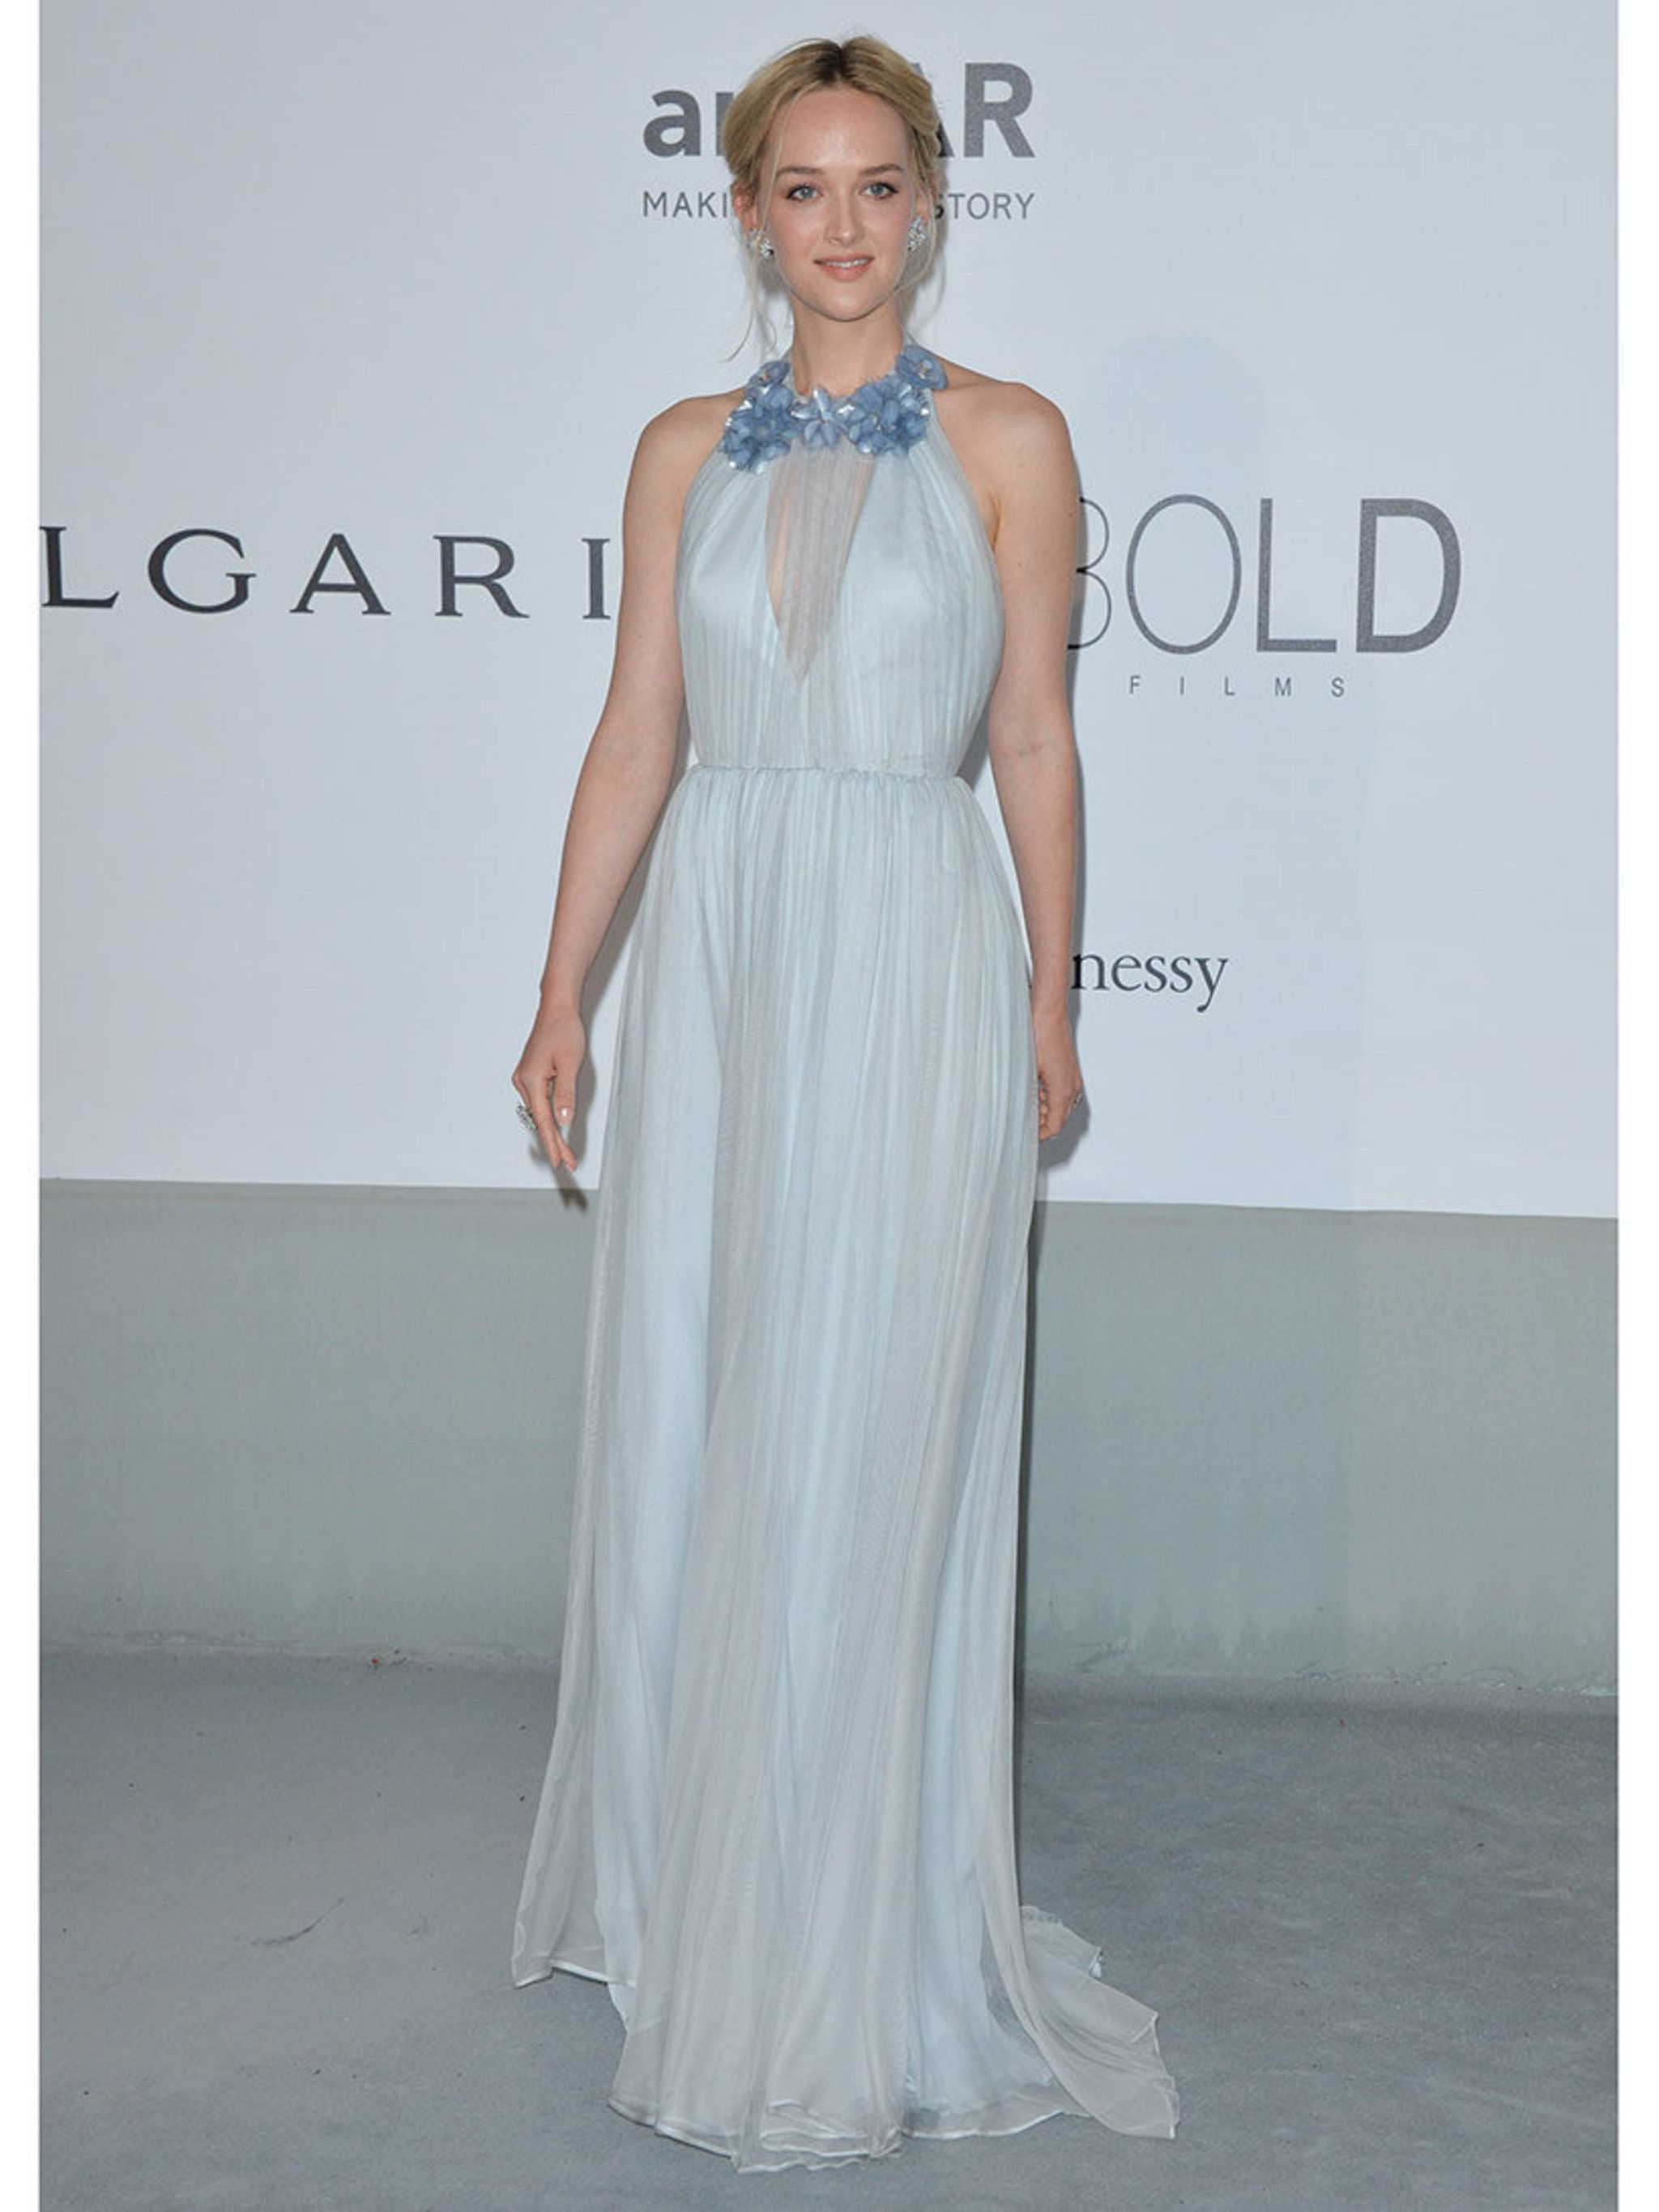 Bridal inspiration for wedding dresses from the Cannes red carpet 2014